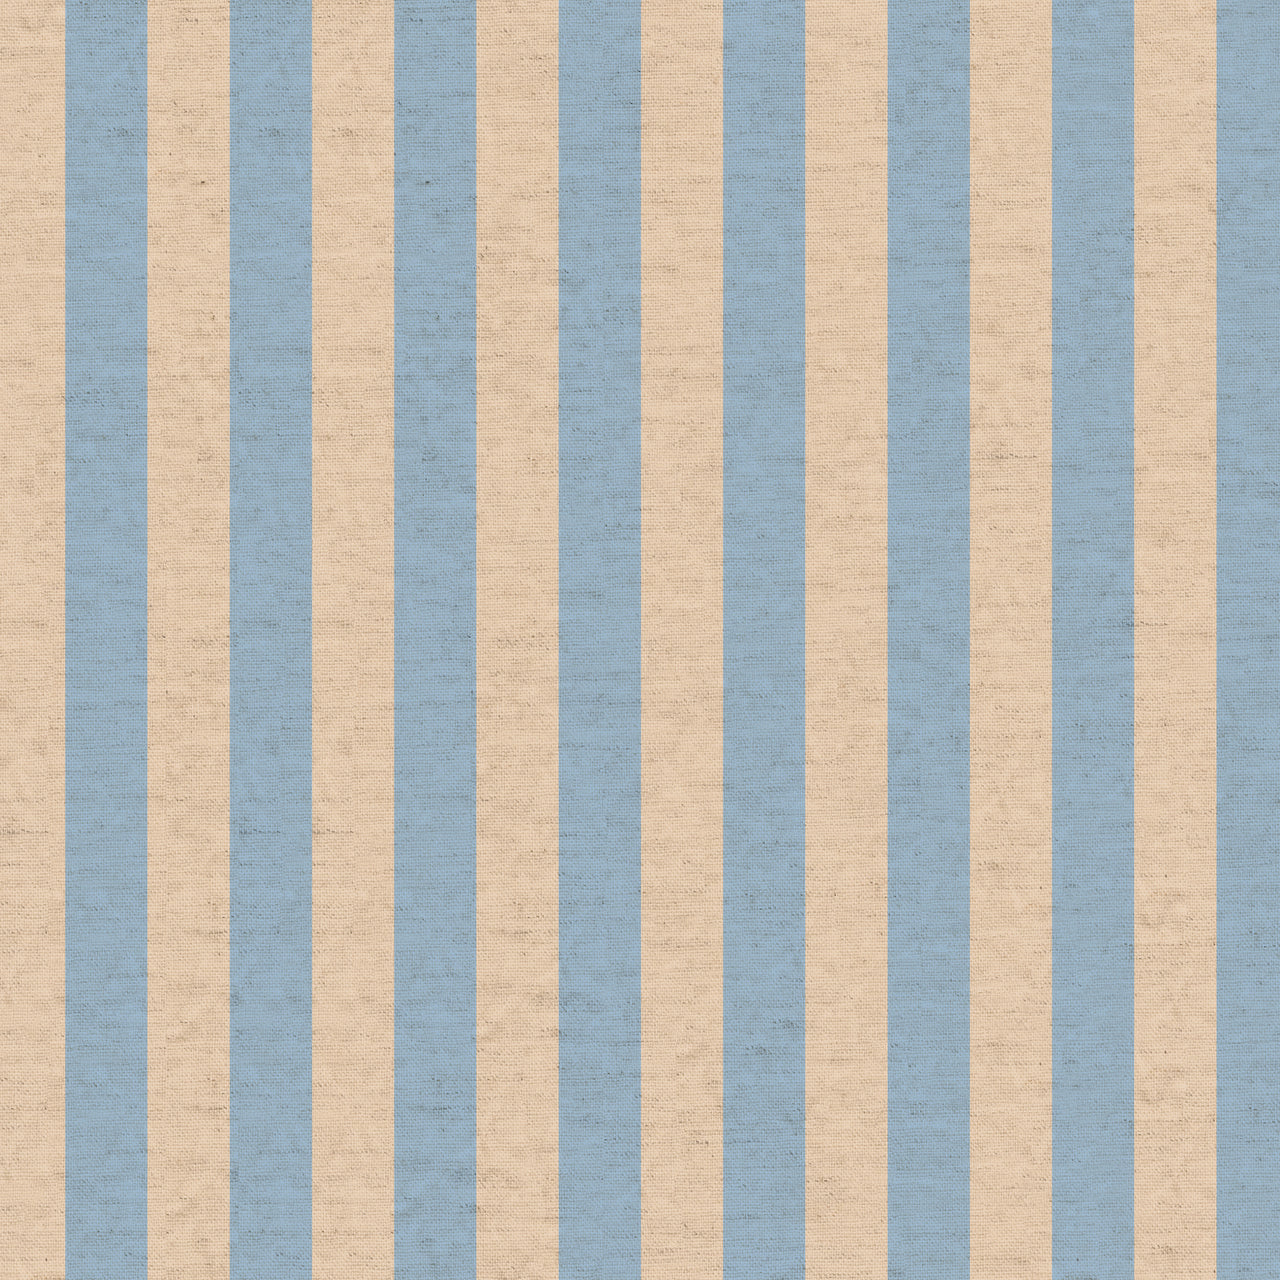 Primavera by Rifle Paper Co : Cabana Stripe in Periwinkle : Cotton and Steel : Canvas